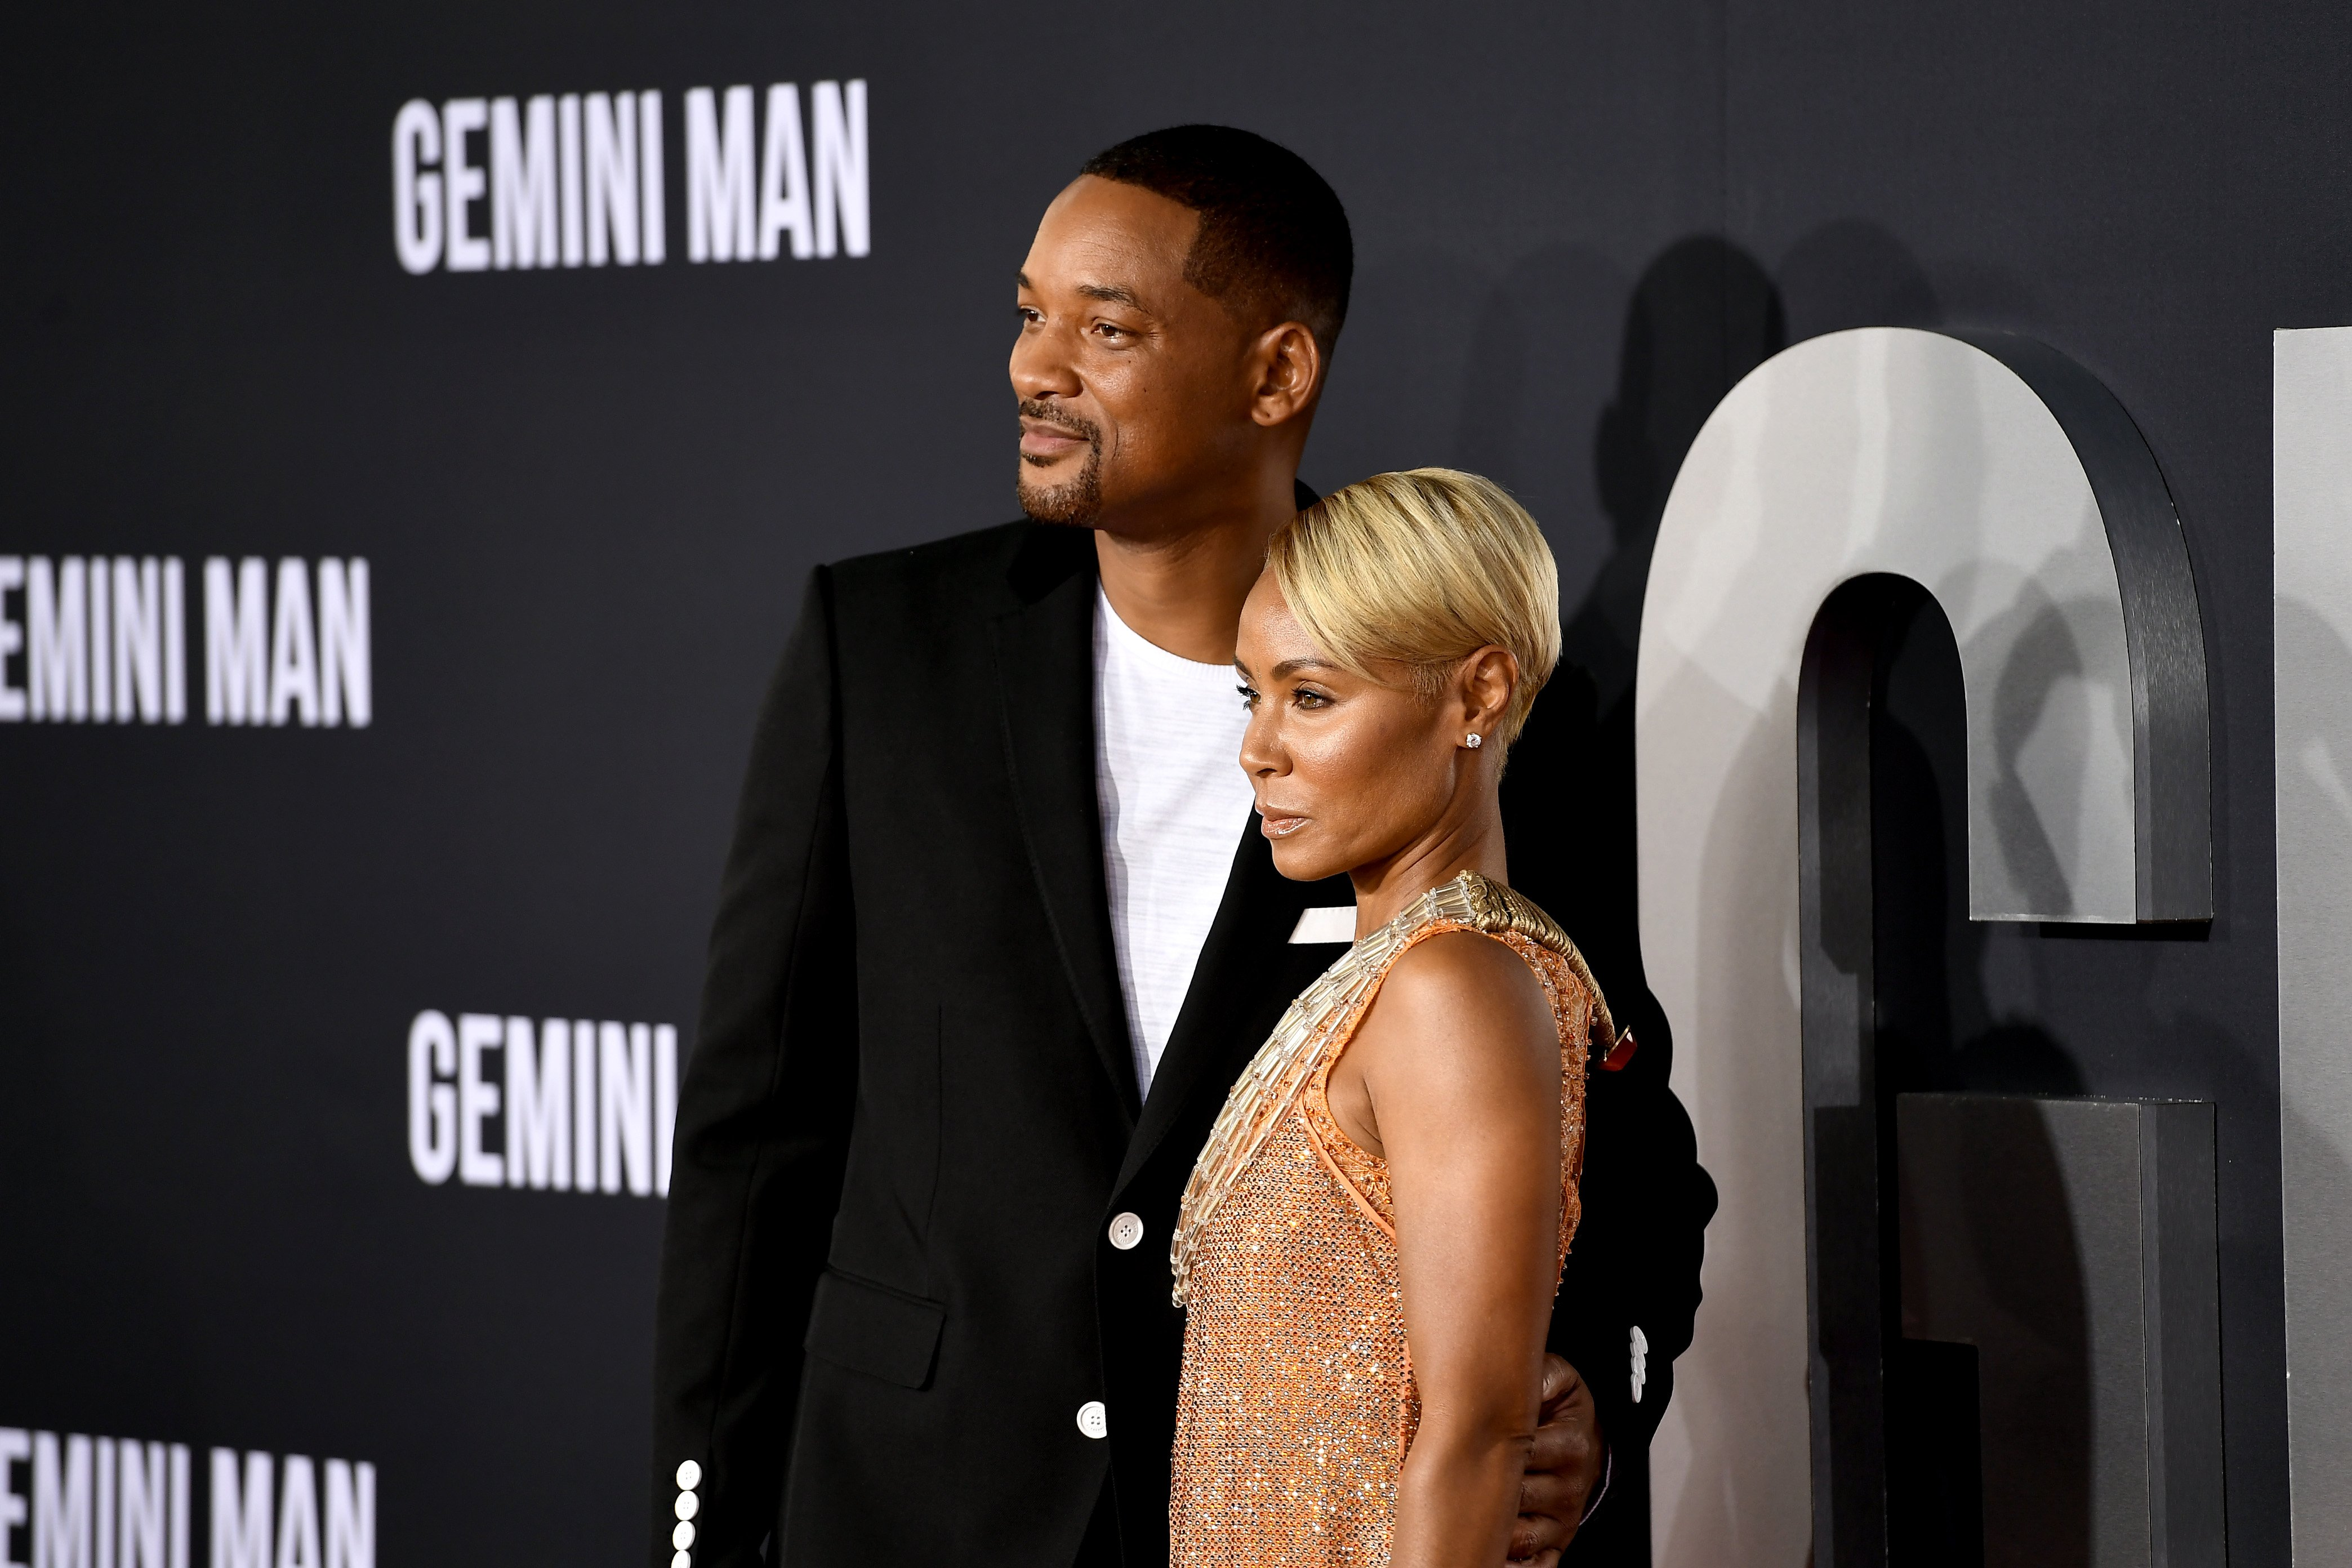 """Image Credits: Getty Images / Frazer Harrison 